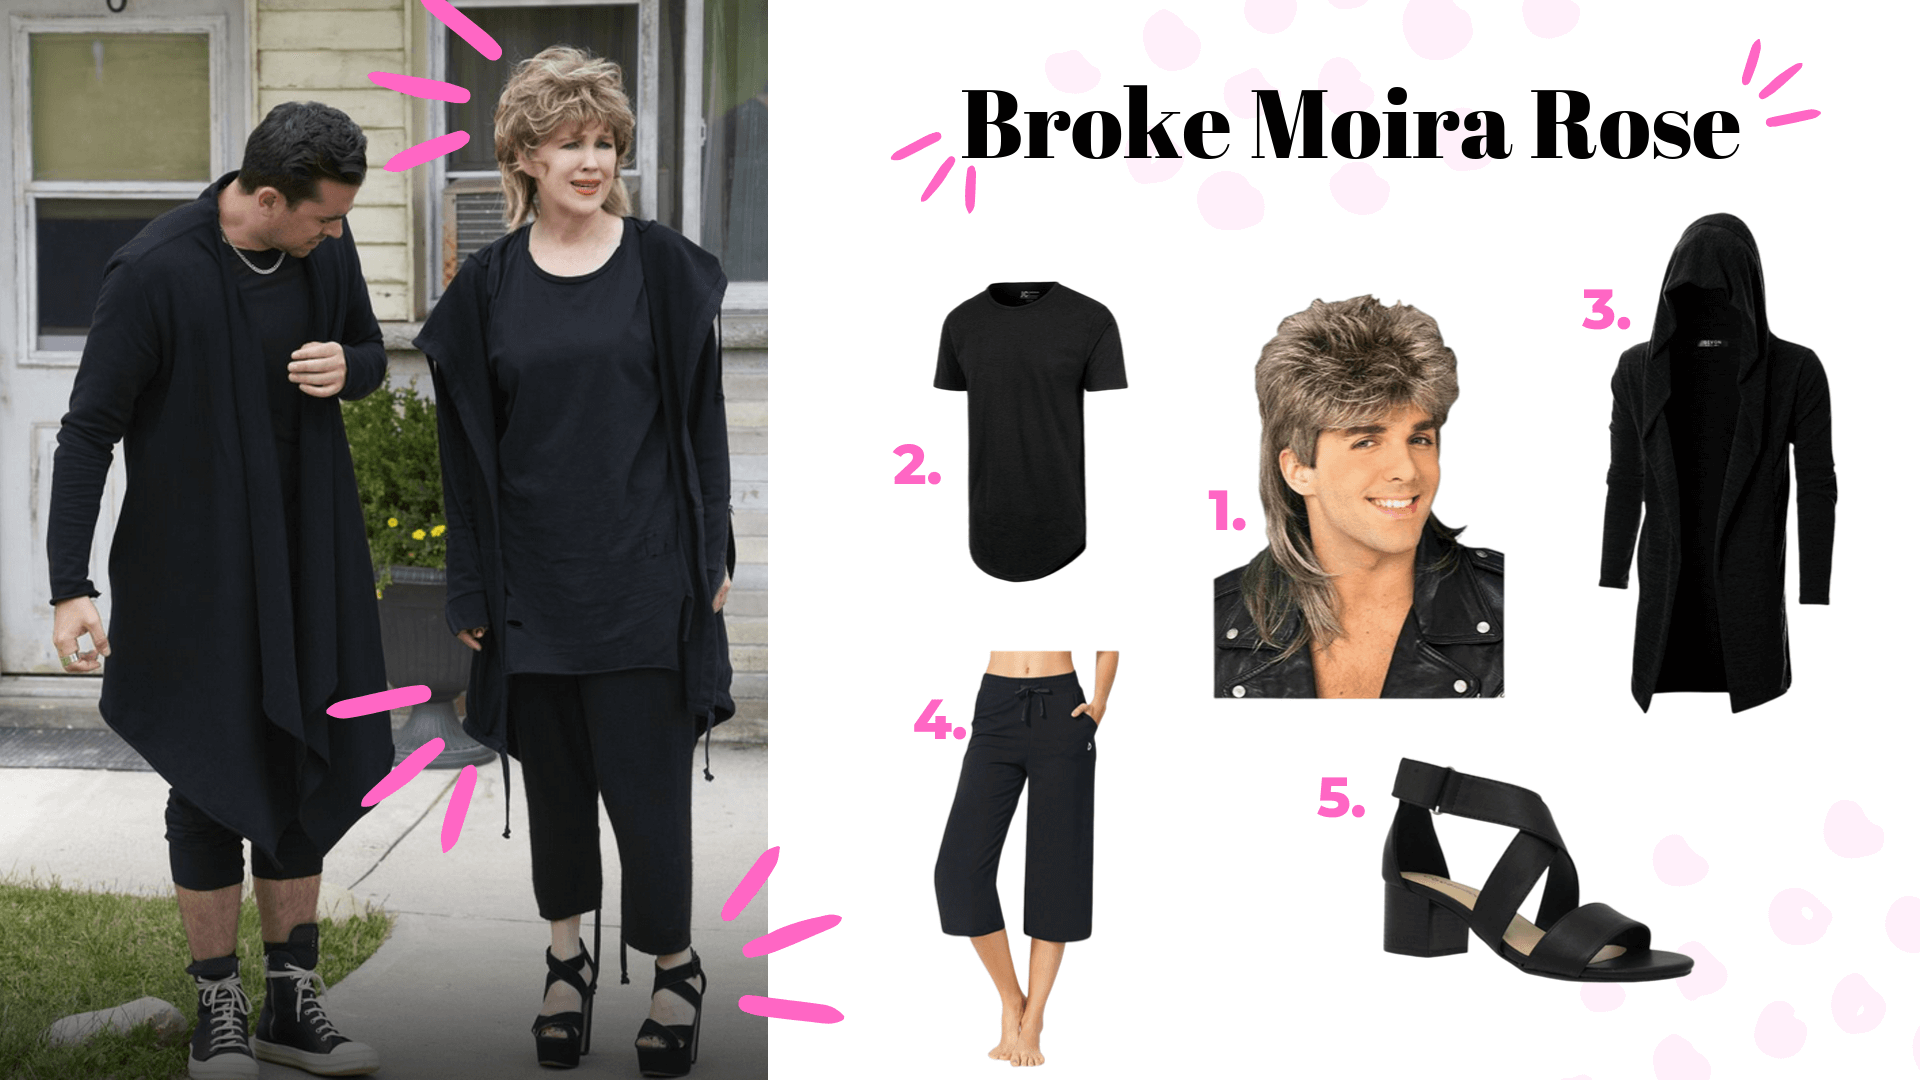 schitt's creek halloween costume broke moira rose